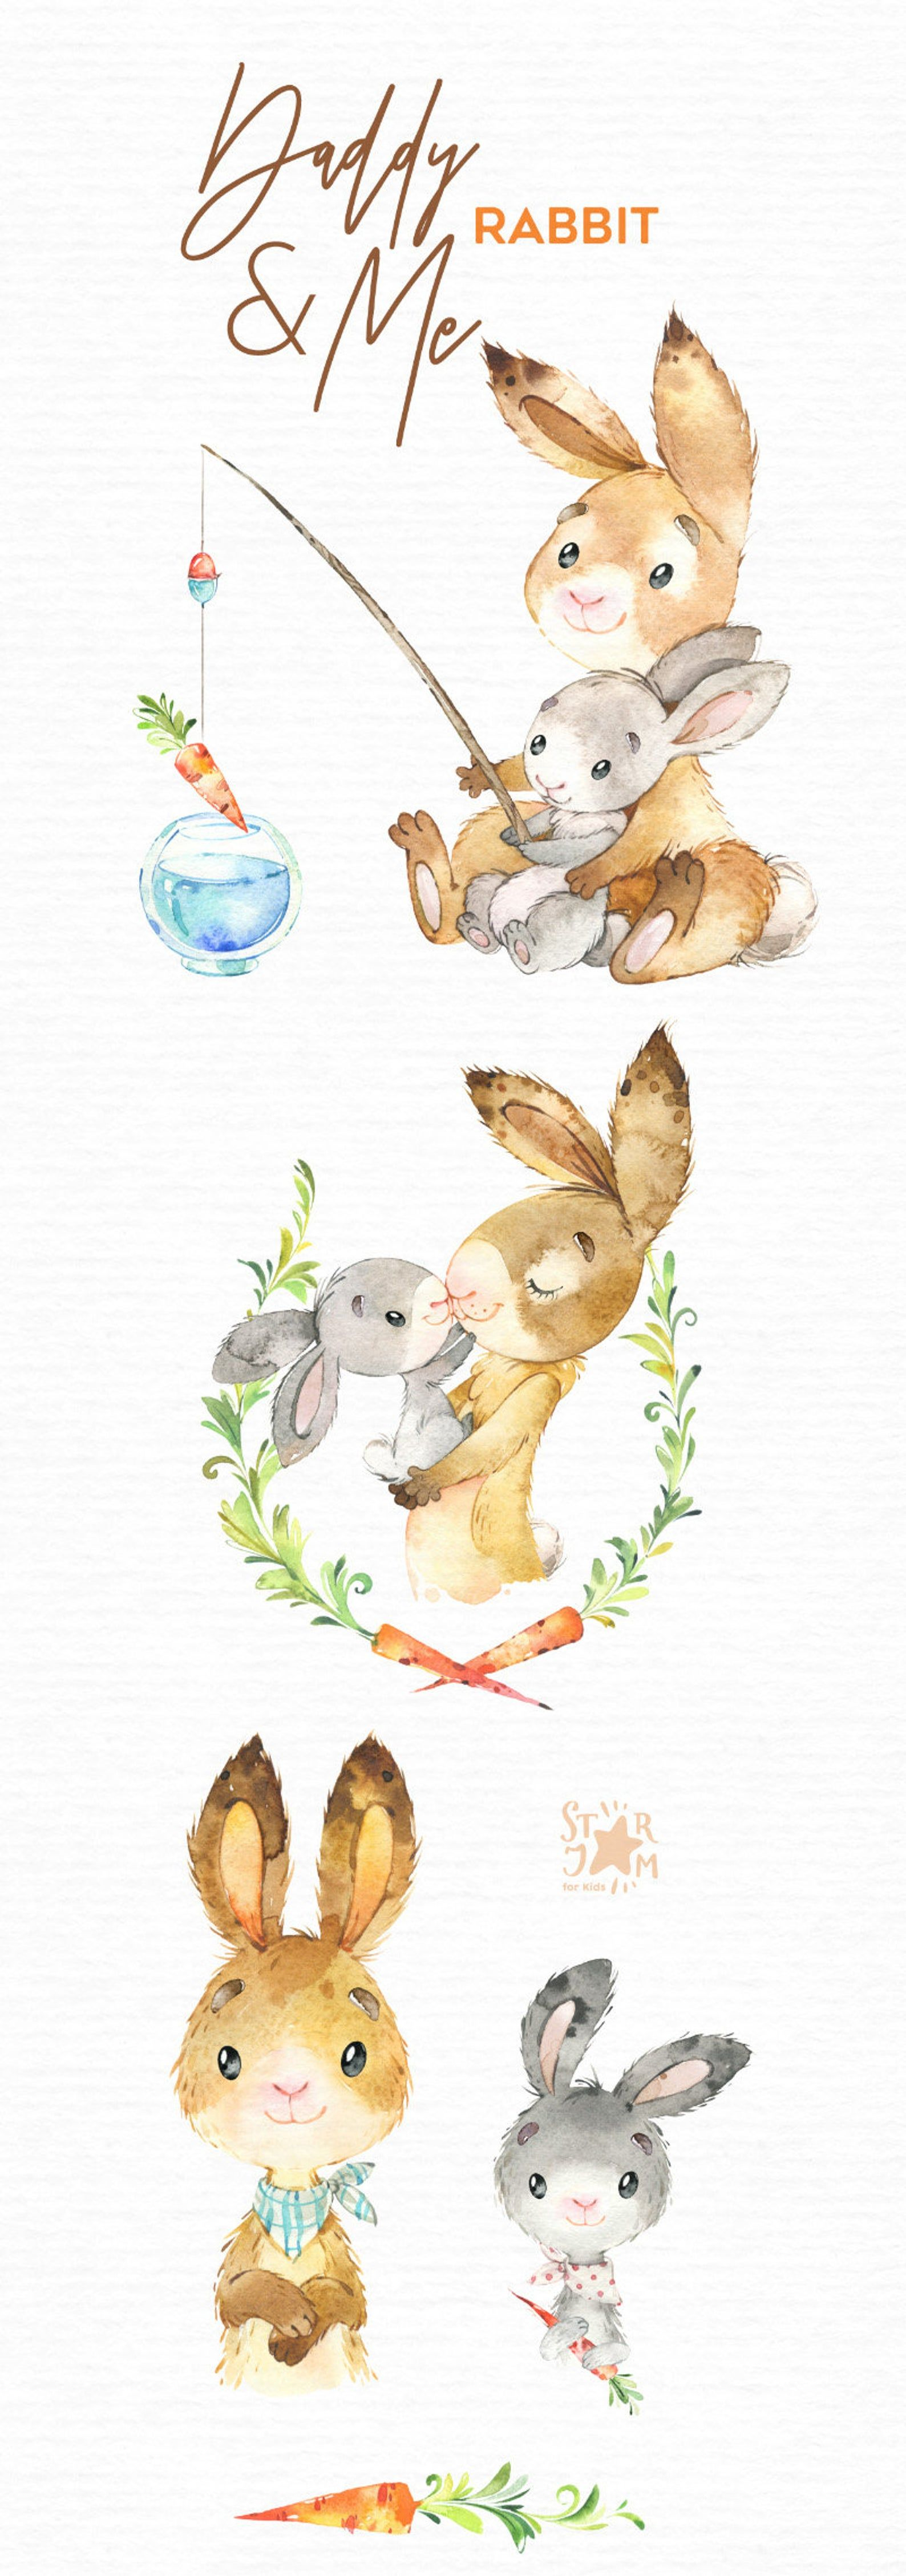 Daddy Me Rabbit Watercolor Animals Clipart Father Hugs Etsy In 2021 Watercolor Animals Animal Clipart Animals